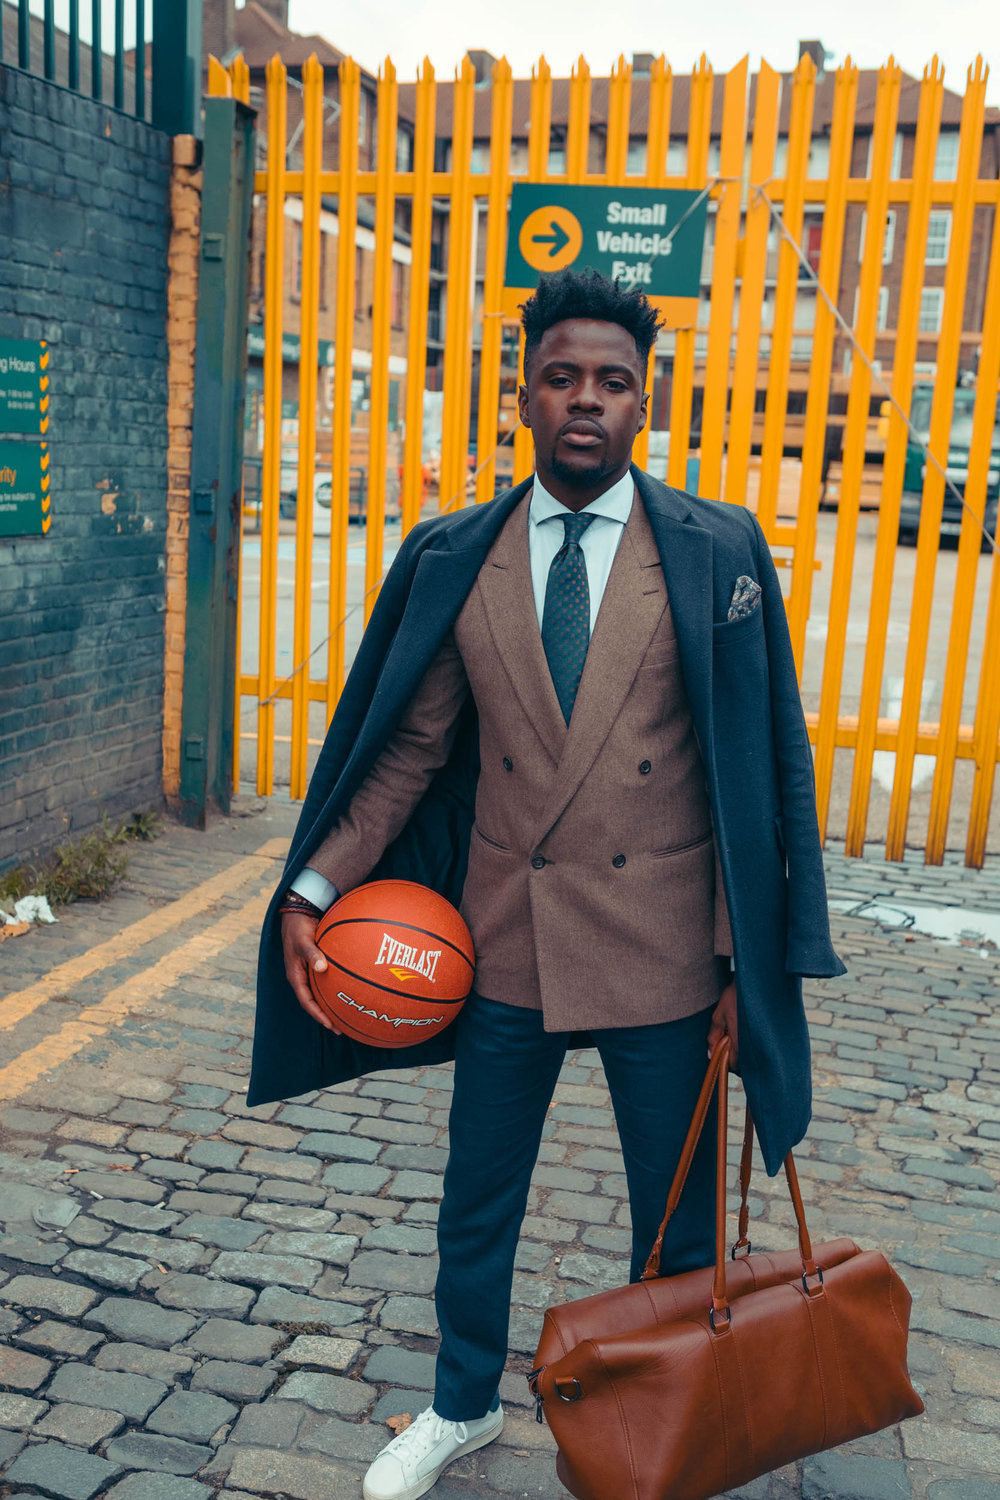 Javanandre-wearing-suit-holds-holdall-and-basketball